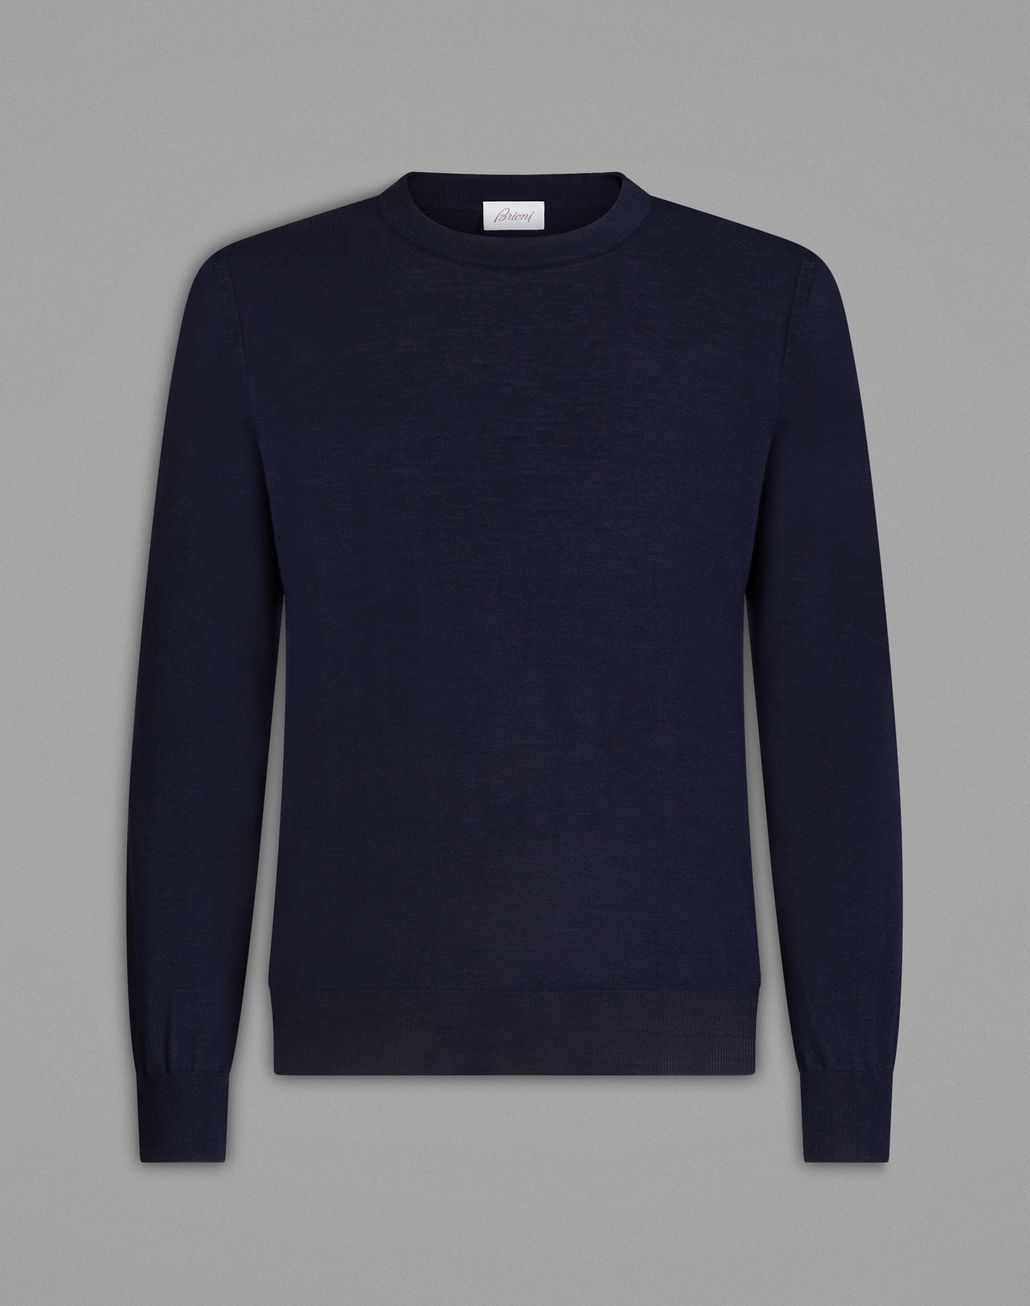 BRIONI Navy Blue Crew-Neck Sweater Knitwear U f